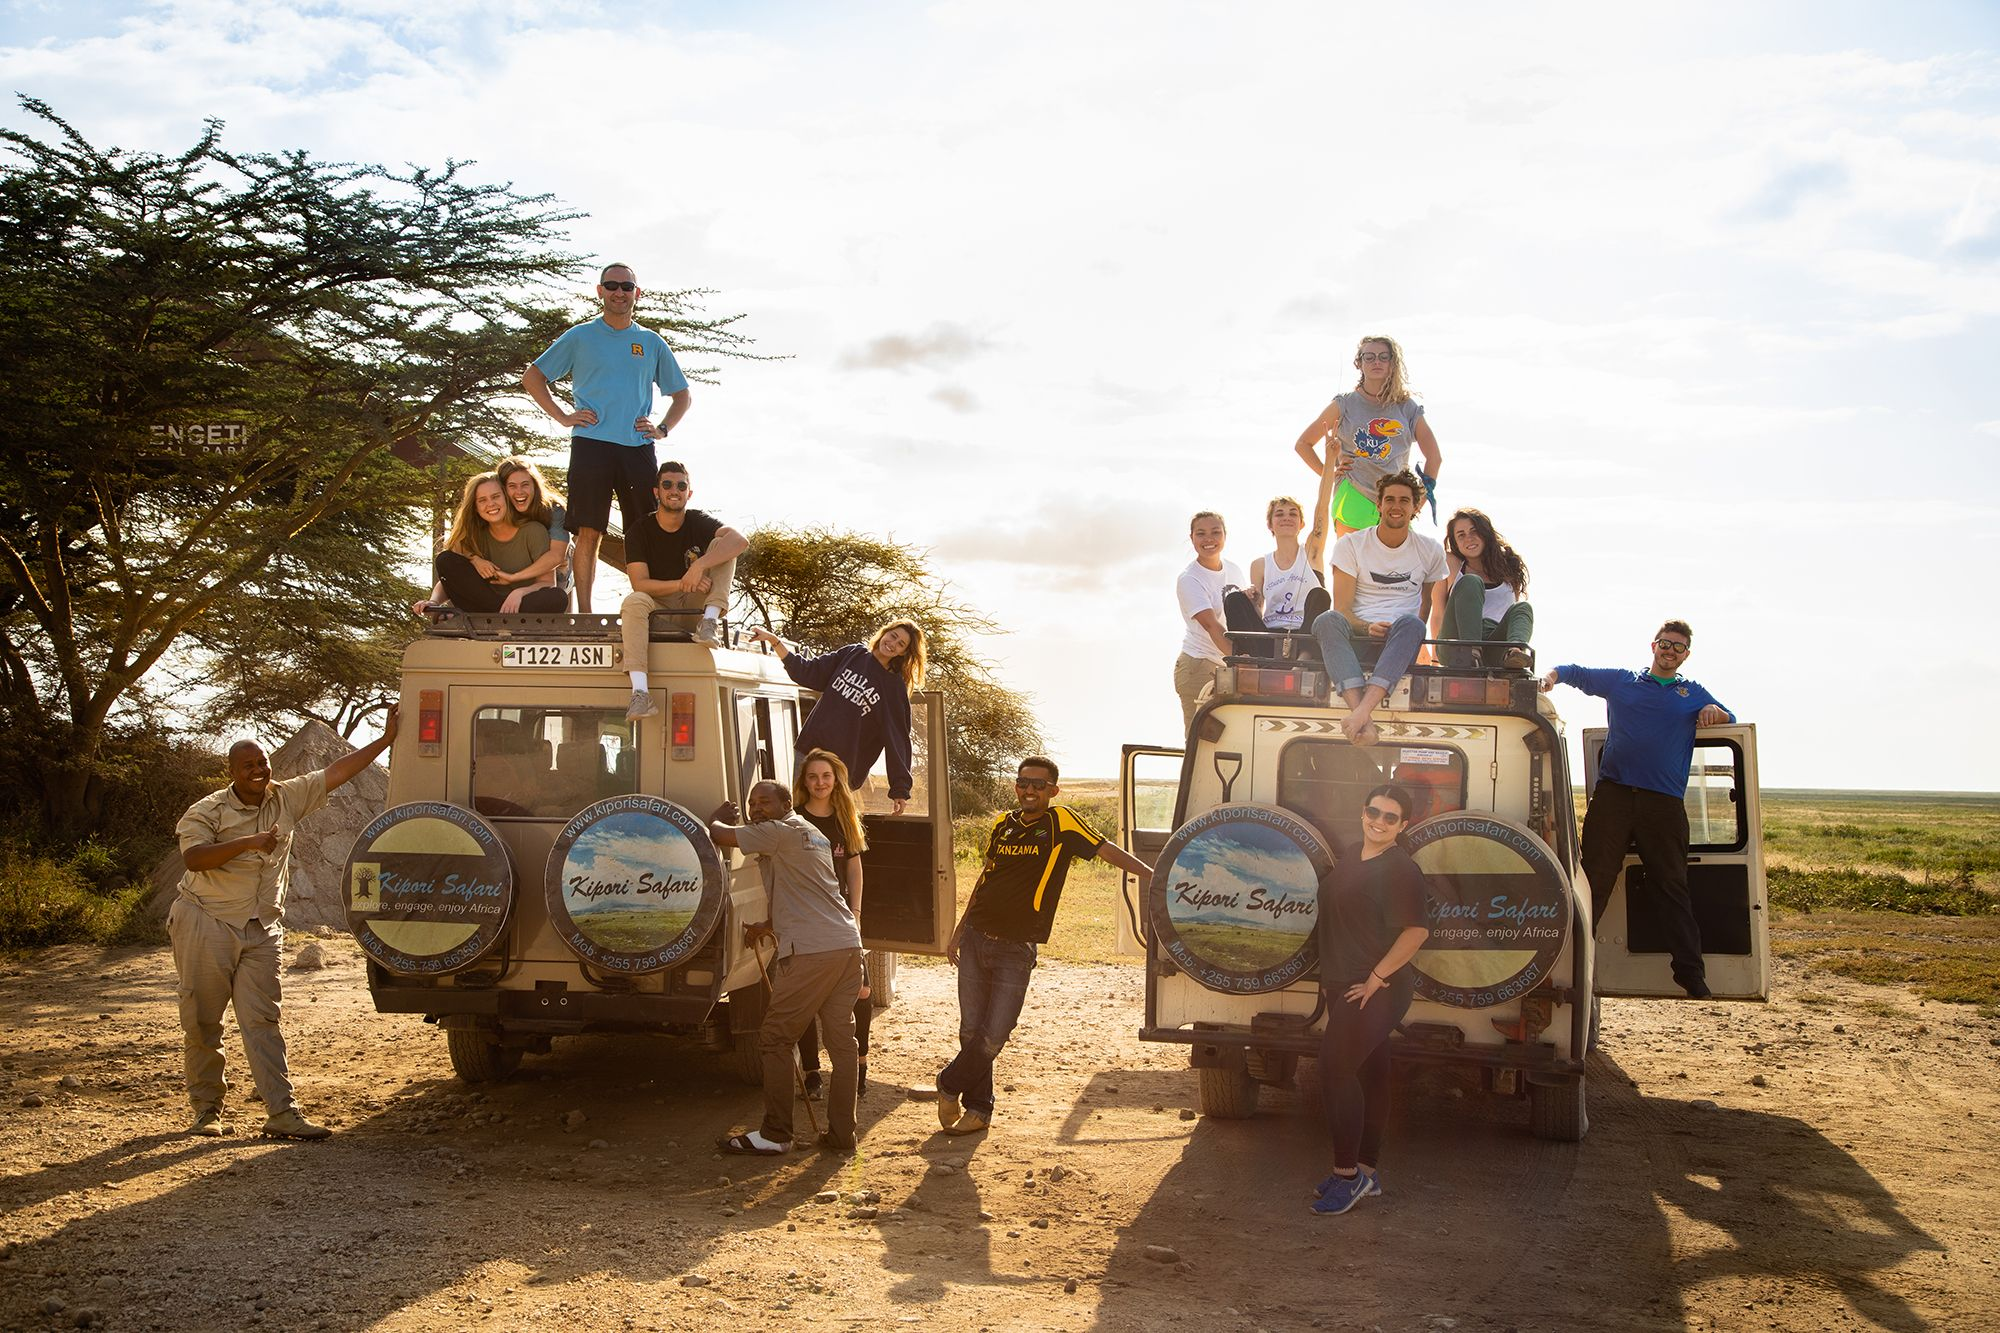 Students pose on top of jeeps during a safari in Serengeti National Park.